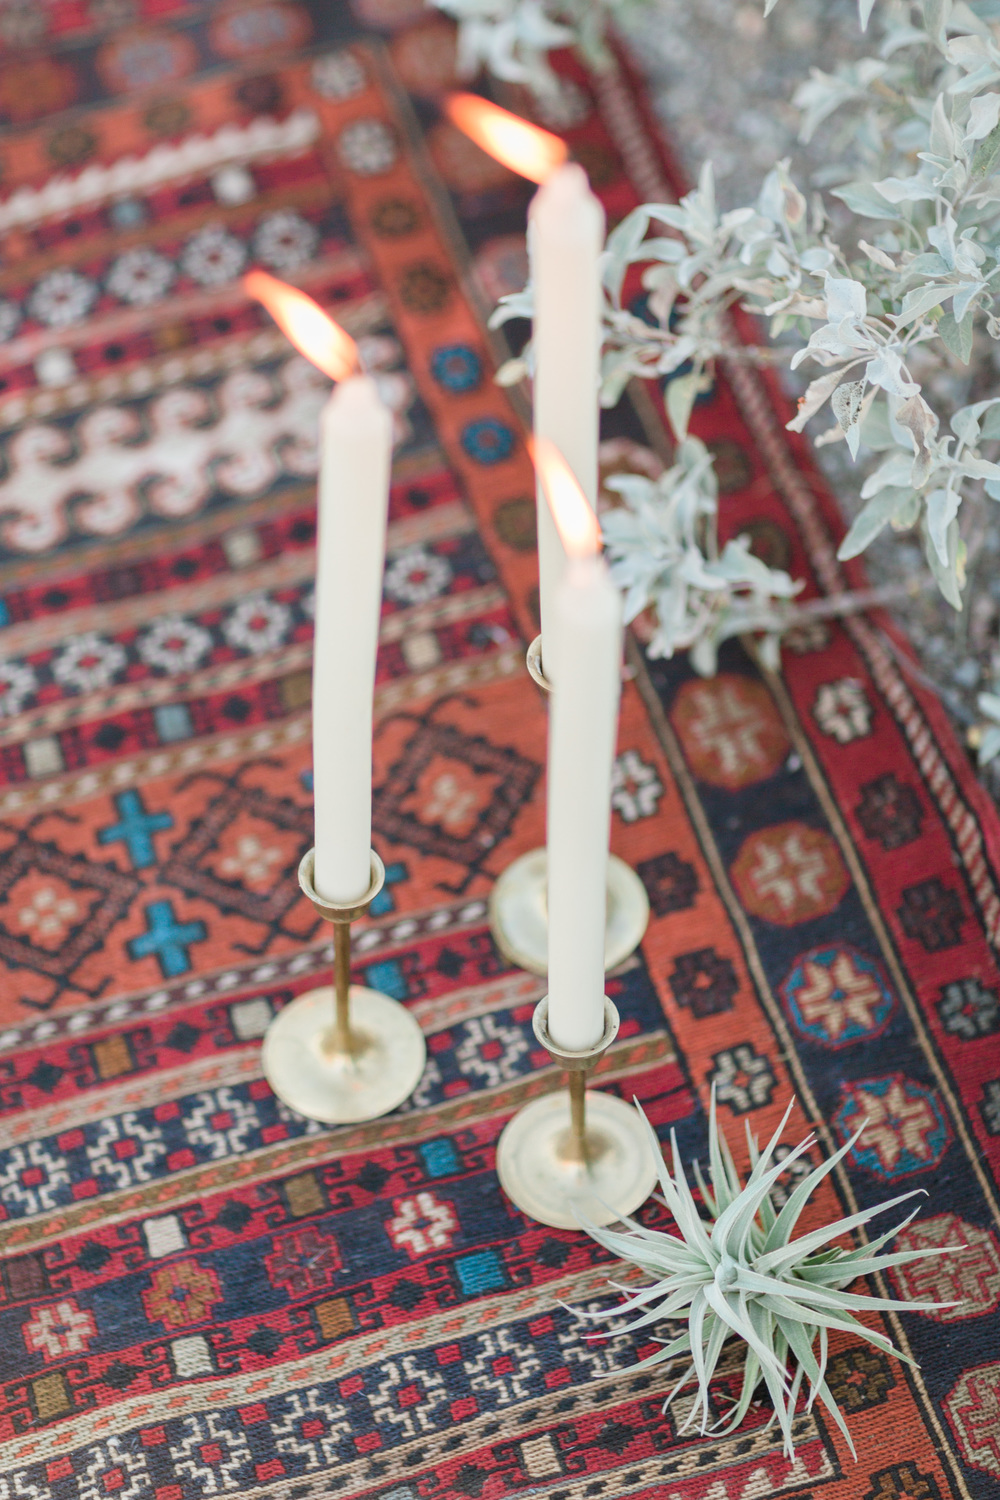 Candles and air plants on a gorgeous Turkish kilim rug